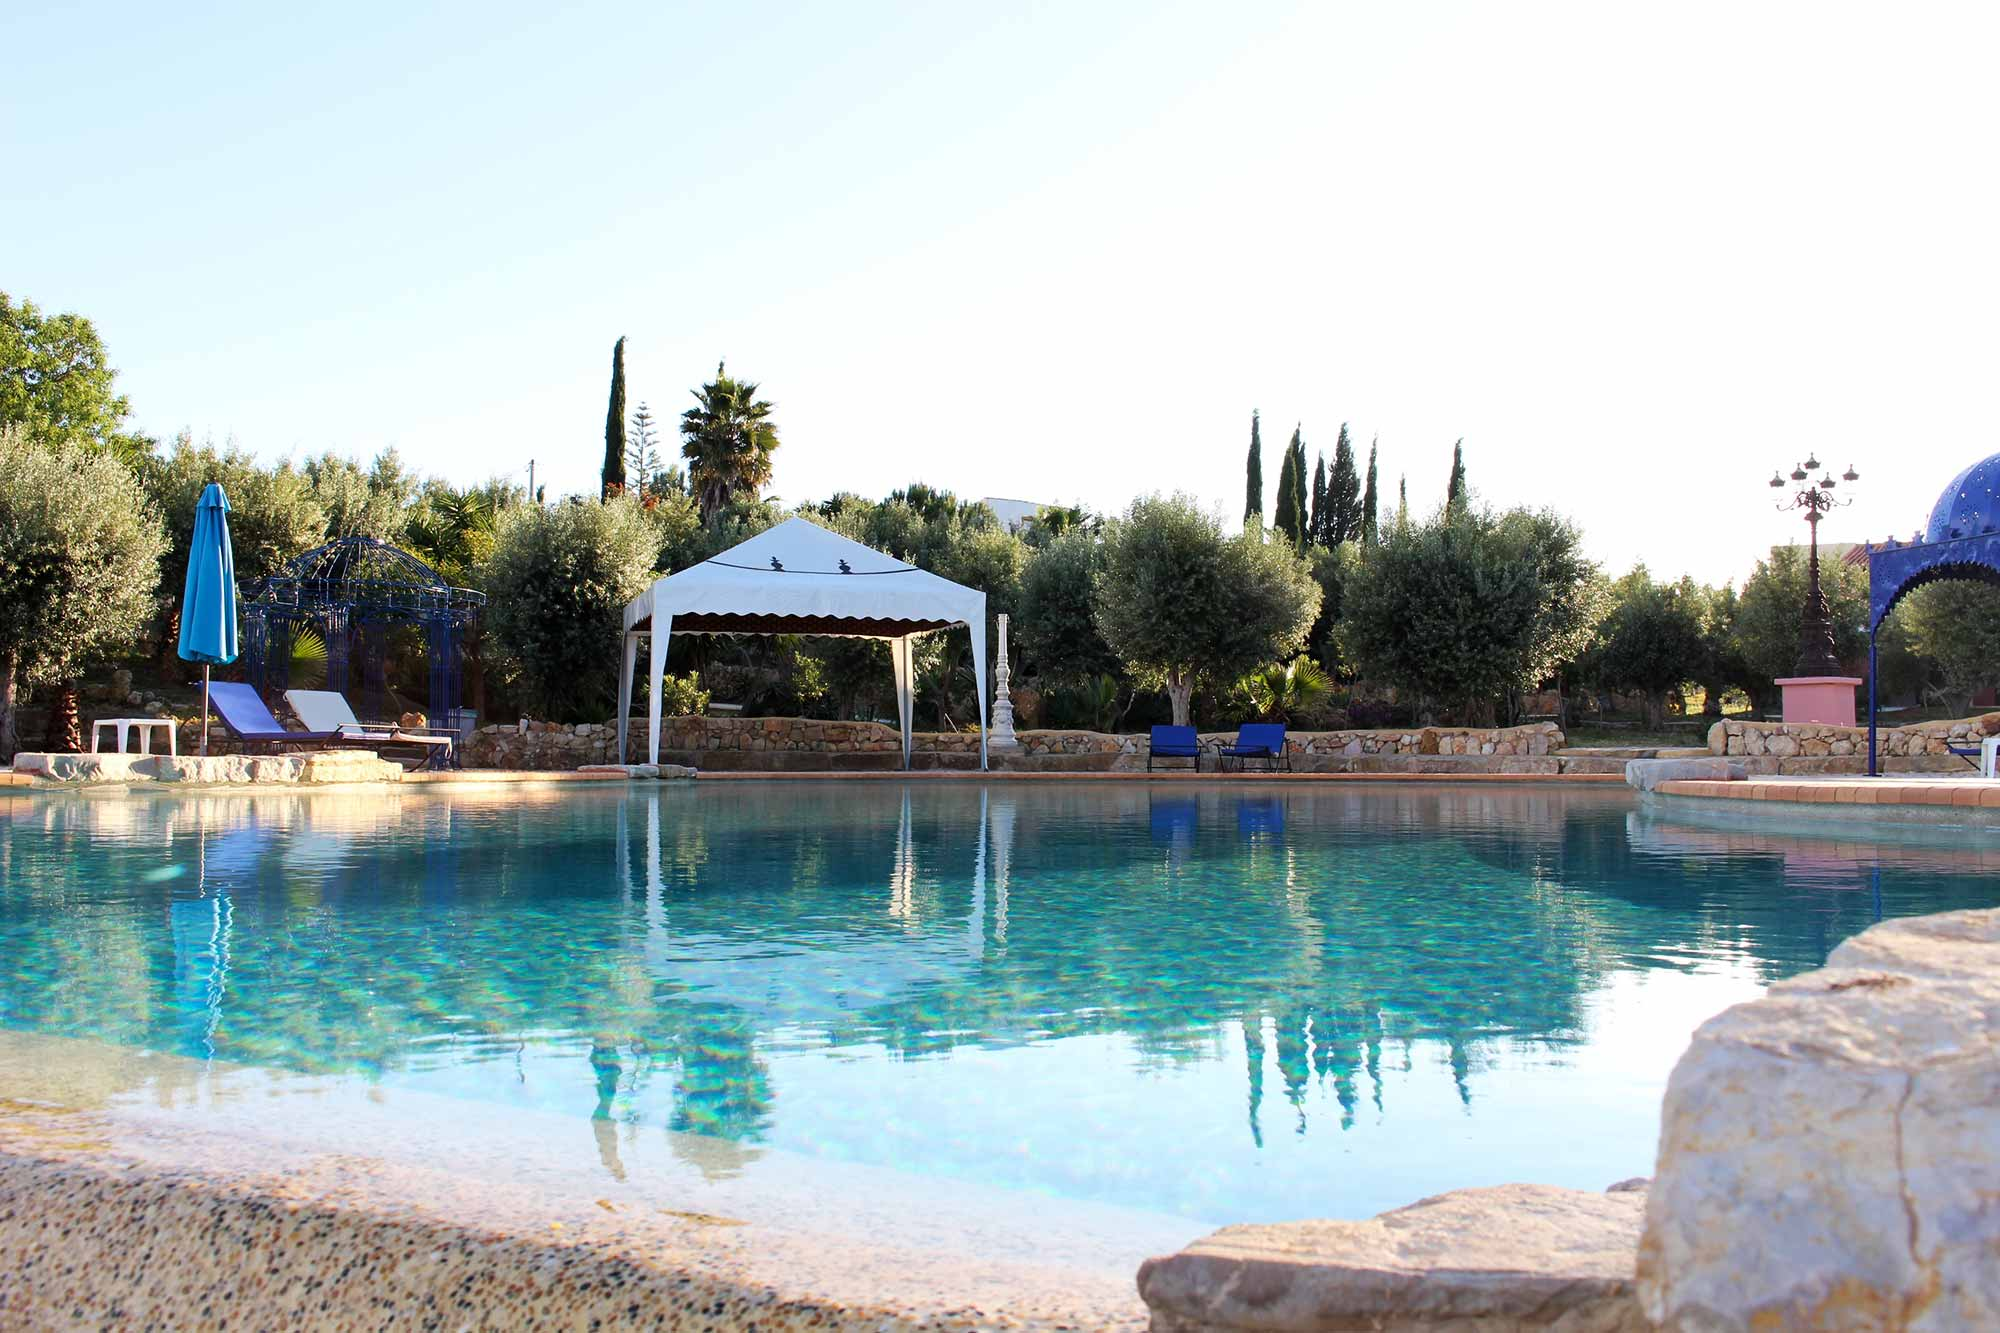 Infinity pool surrounded by olives trees